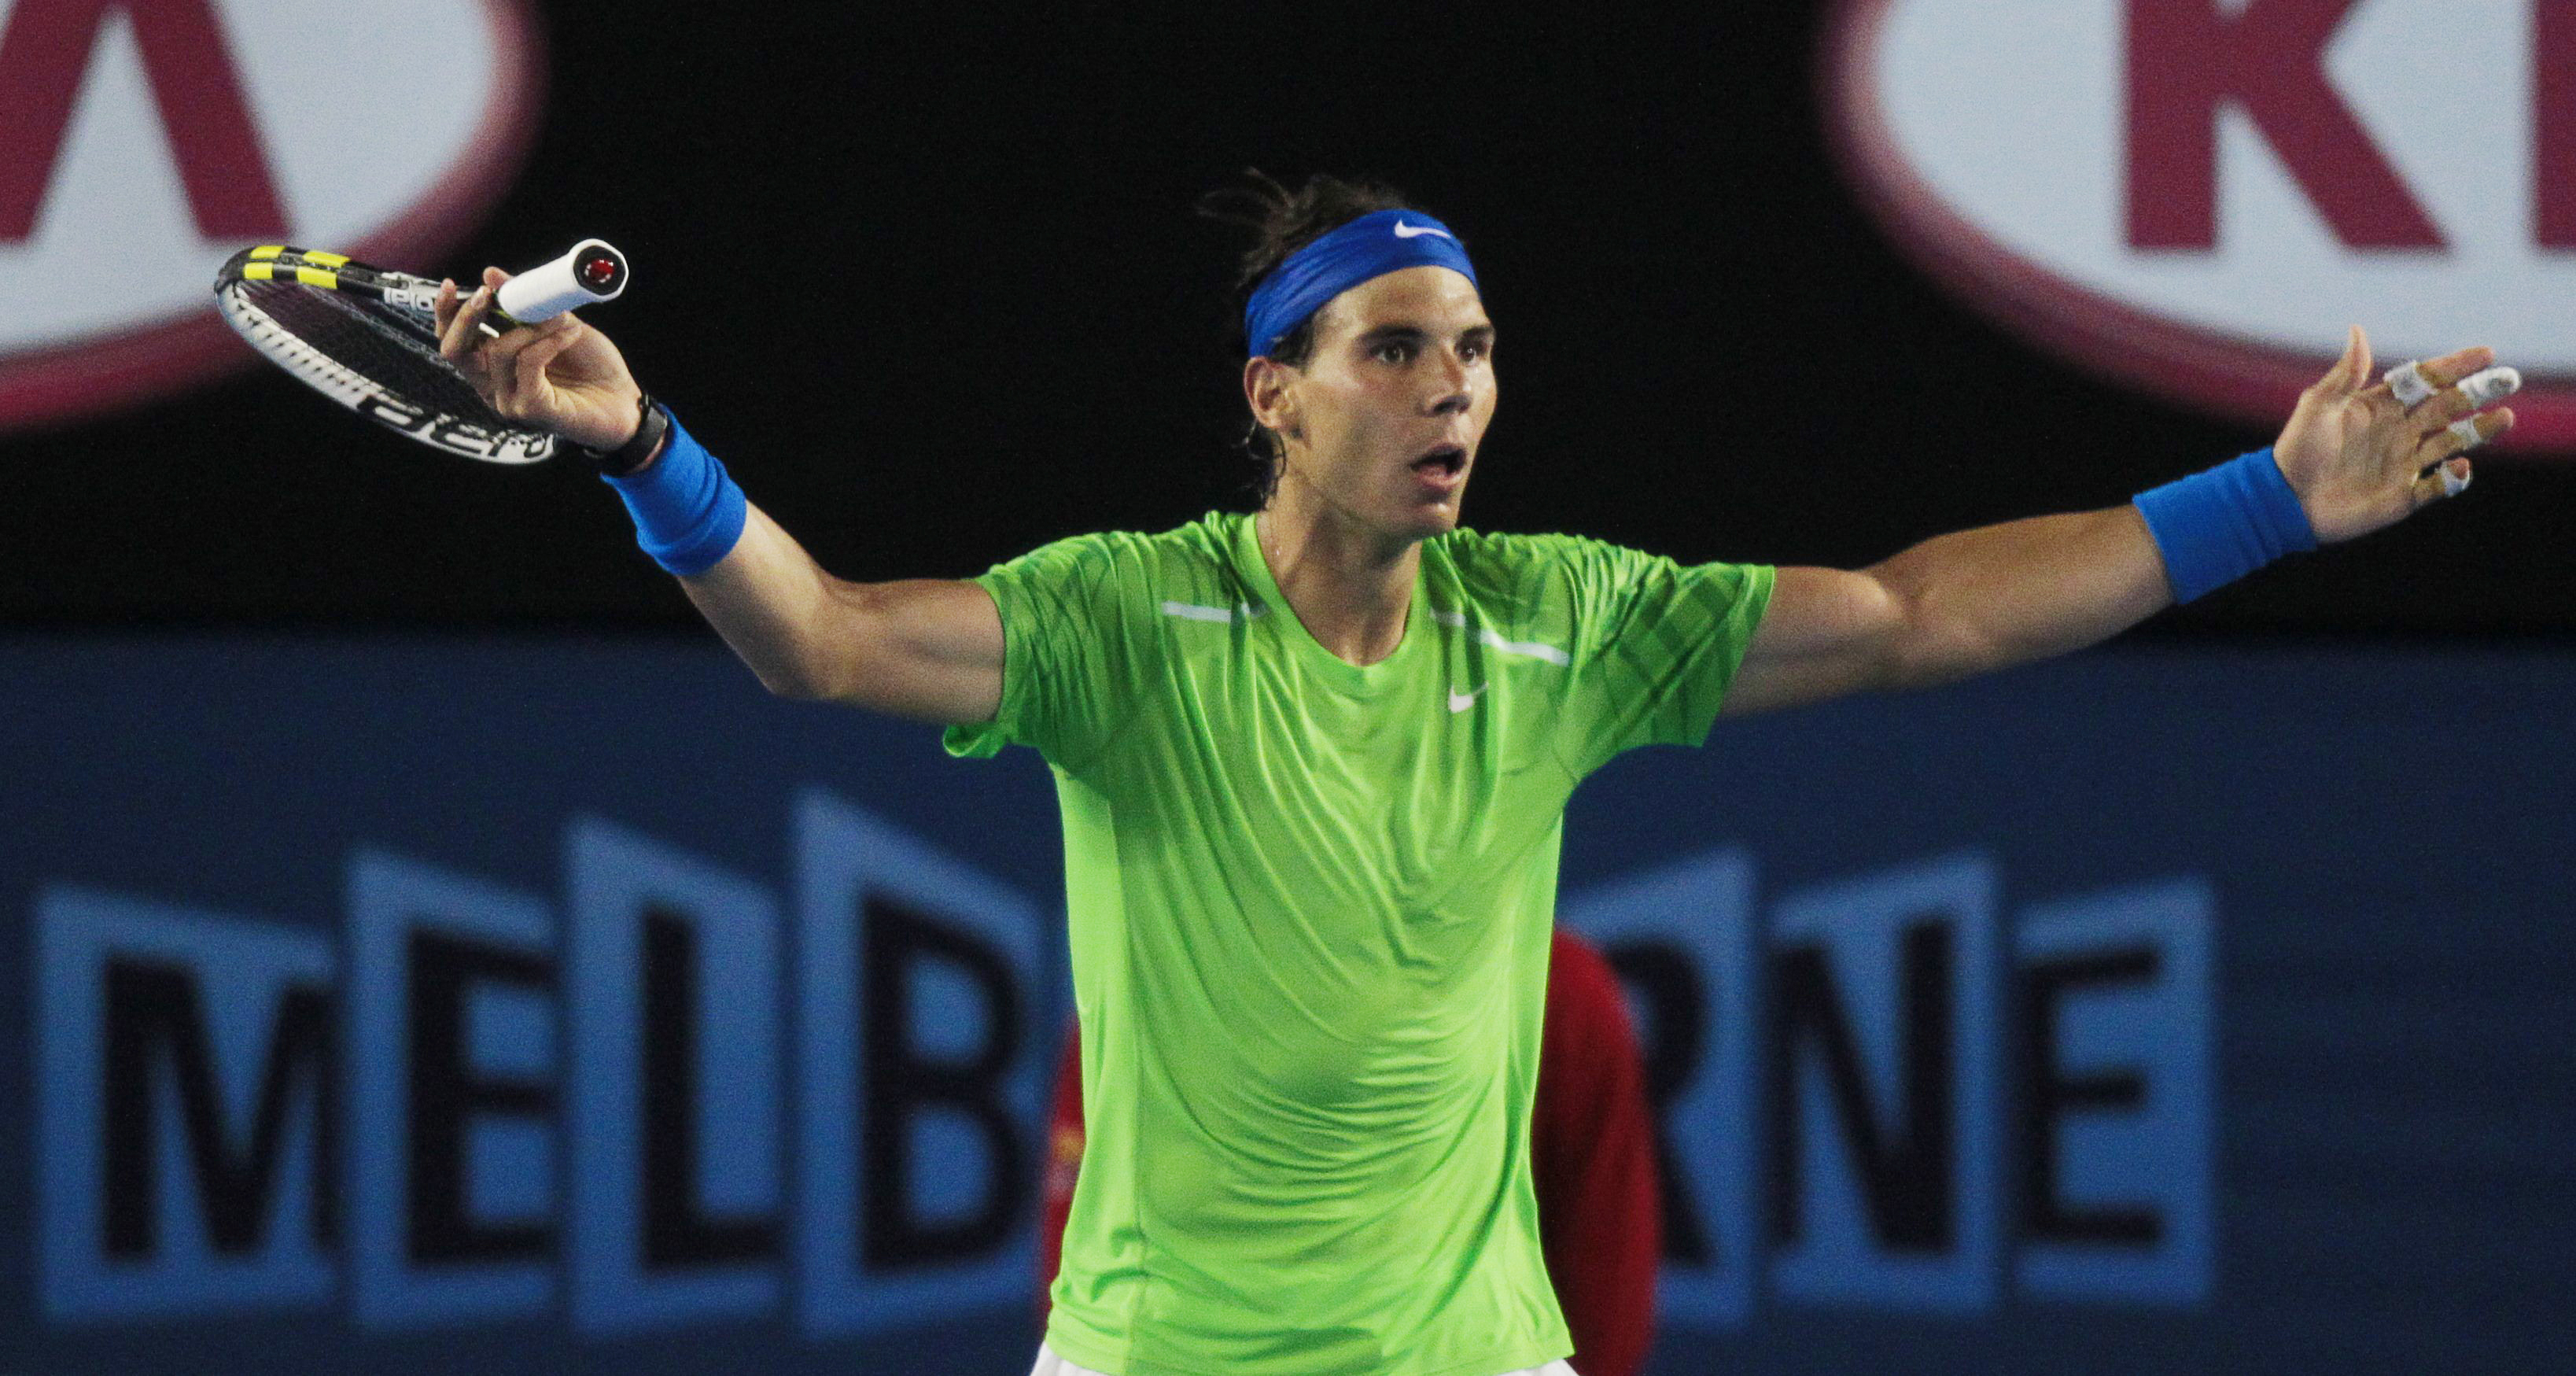 Somewhere along the line Nadal's shirts became much clingier.